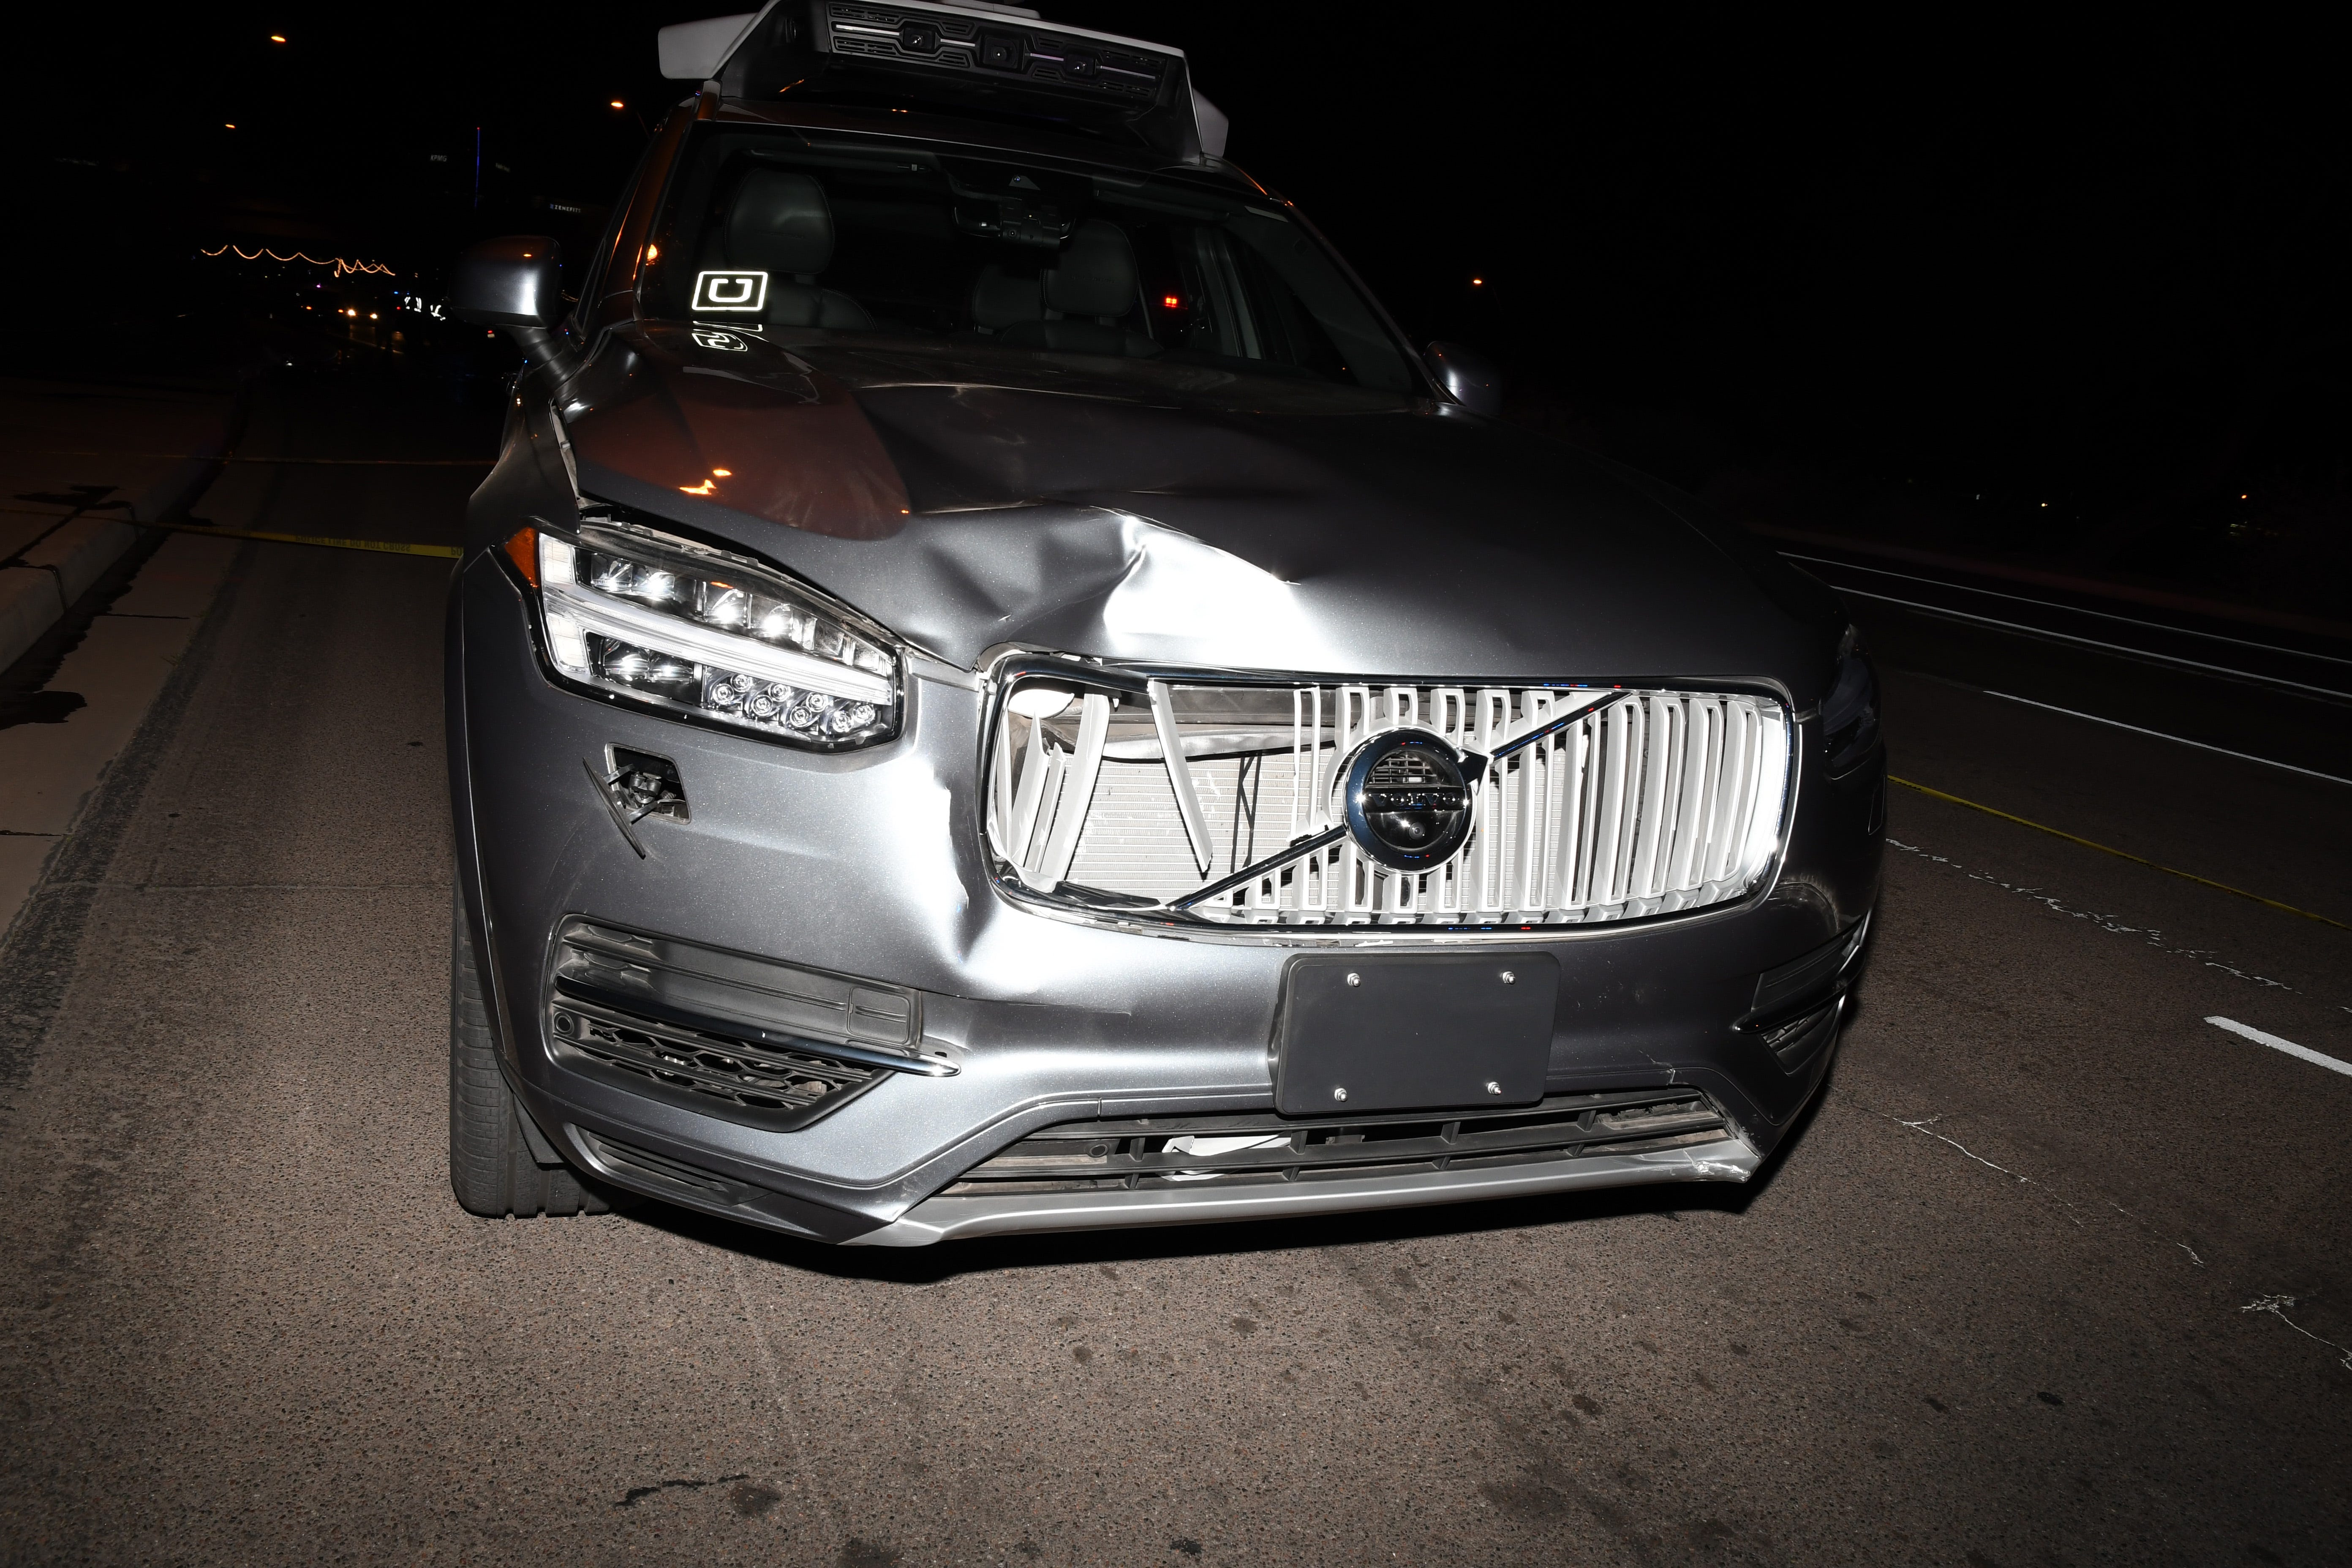 Uber driver mostly to blame for fatal self-driving crash, NTSB finds